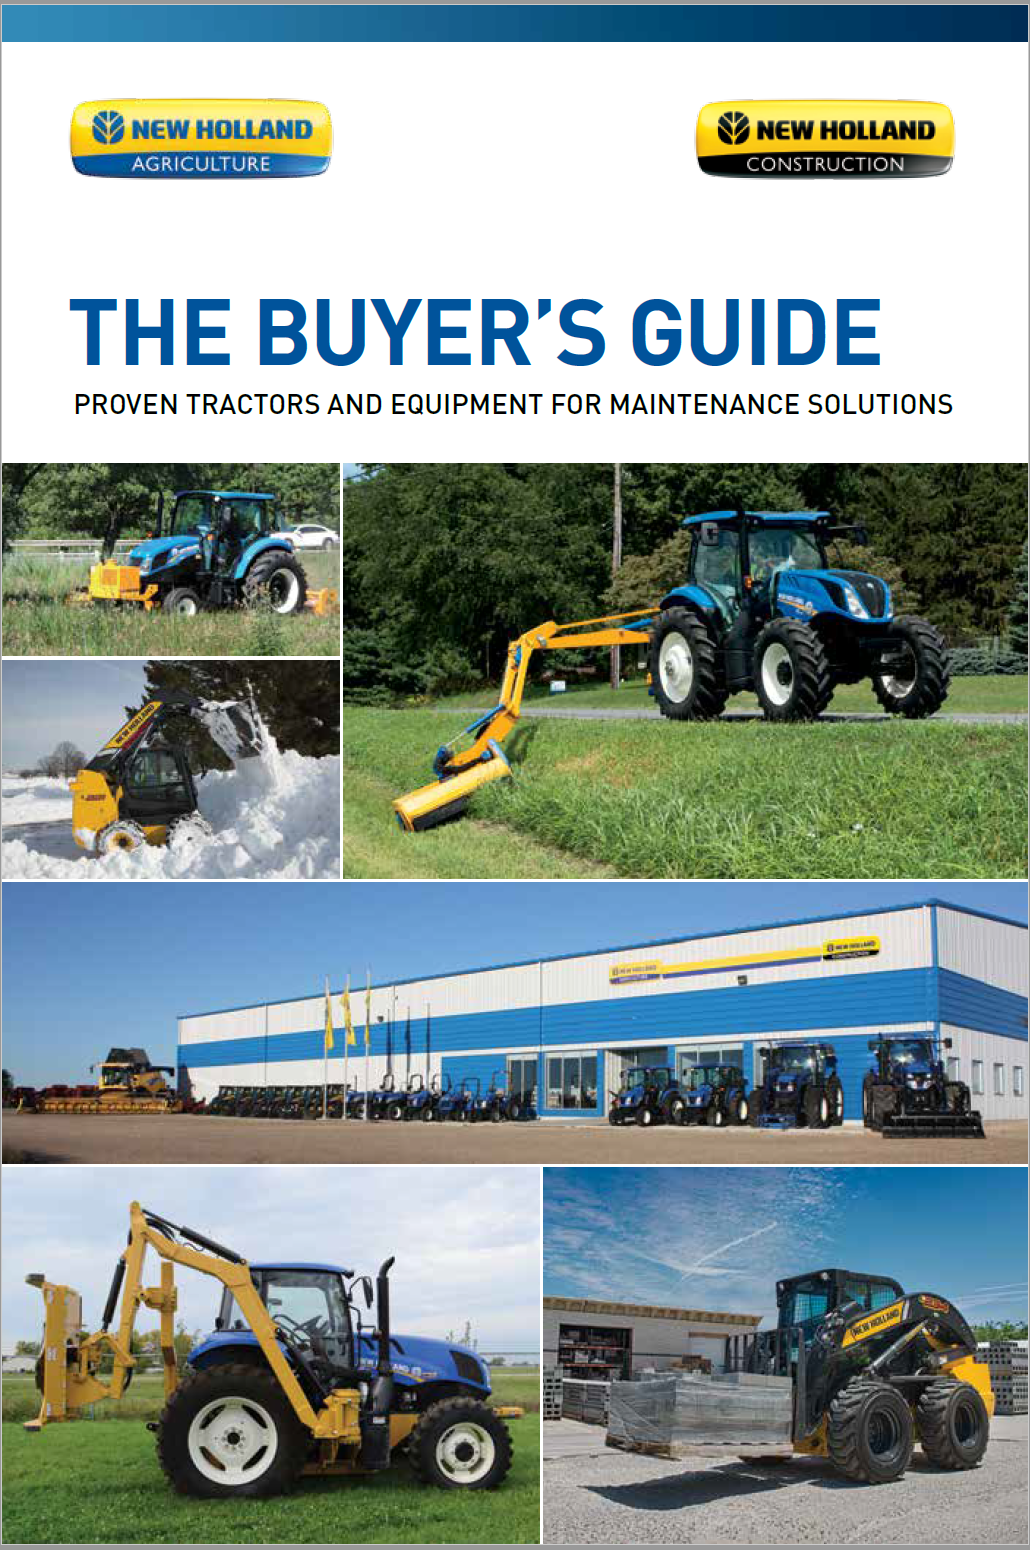 New Holland Maintenance Solutions - Buyers Guide for Proven Tractors a |  Garton Tractor | California | Kubota & New Holland Tractors Equipment